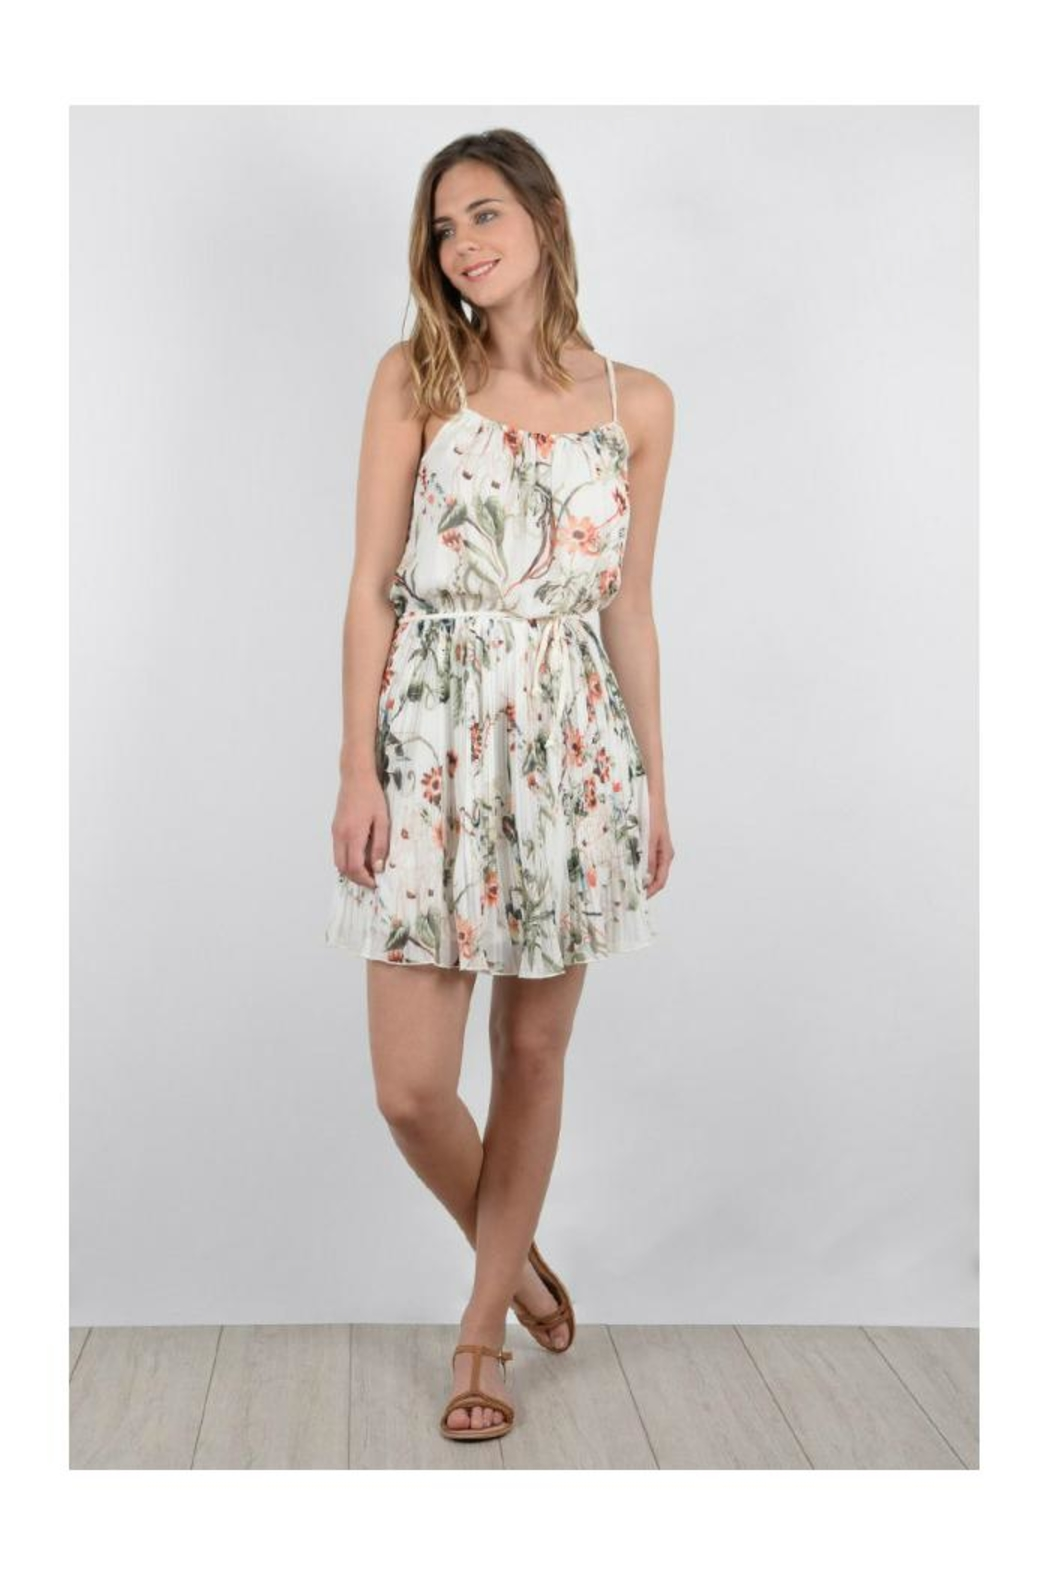 Molly Bracken Floral Sun Dress - Main Image